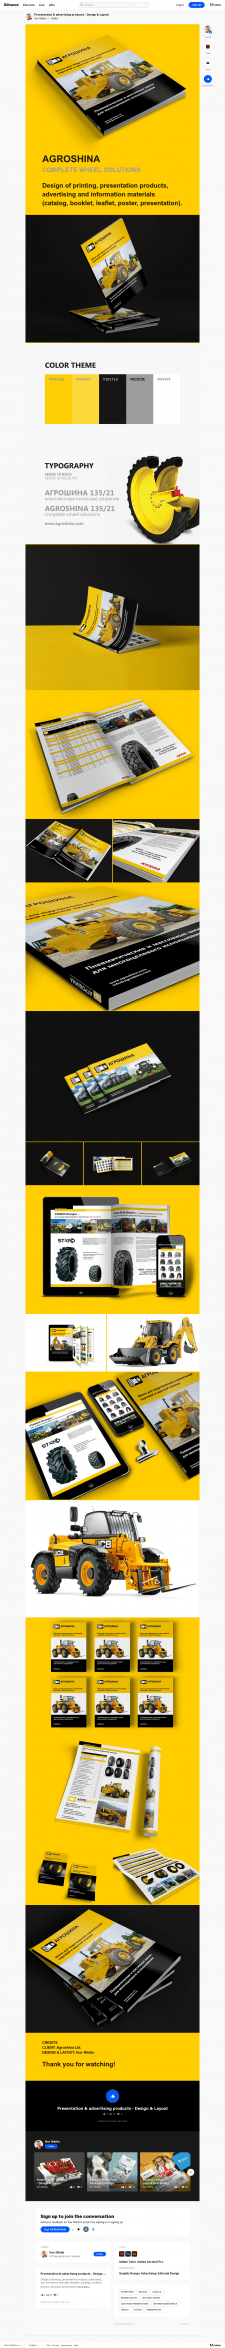 Presentation / Advertising / Catalog - Design